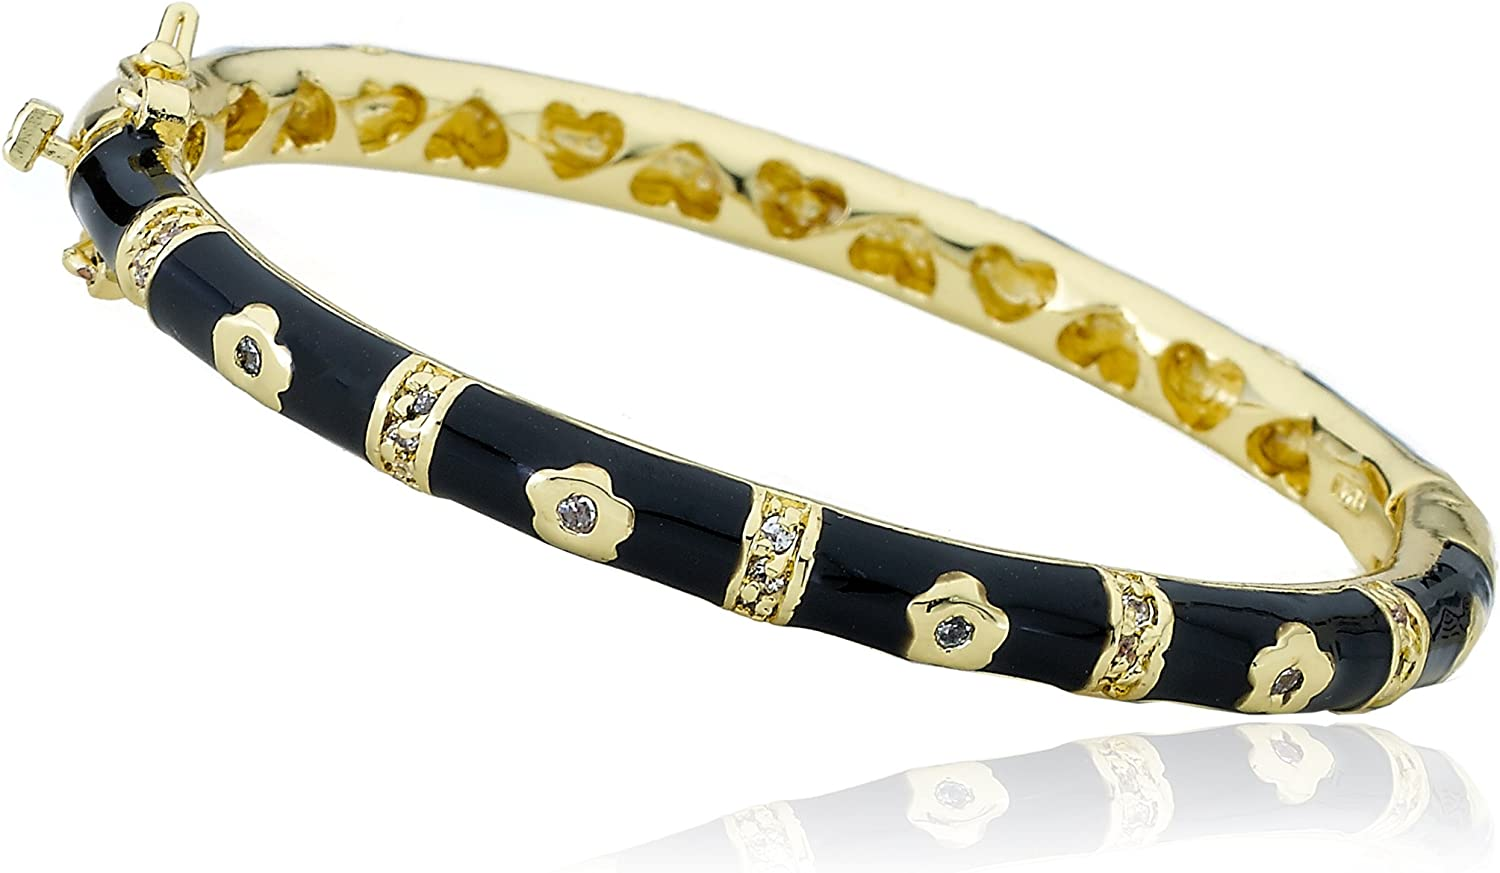 Little Miss Twin Stars Branded goods Max 65% OFF Outfit Black Gold-Plated Bangl 14k Makers